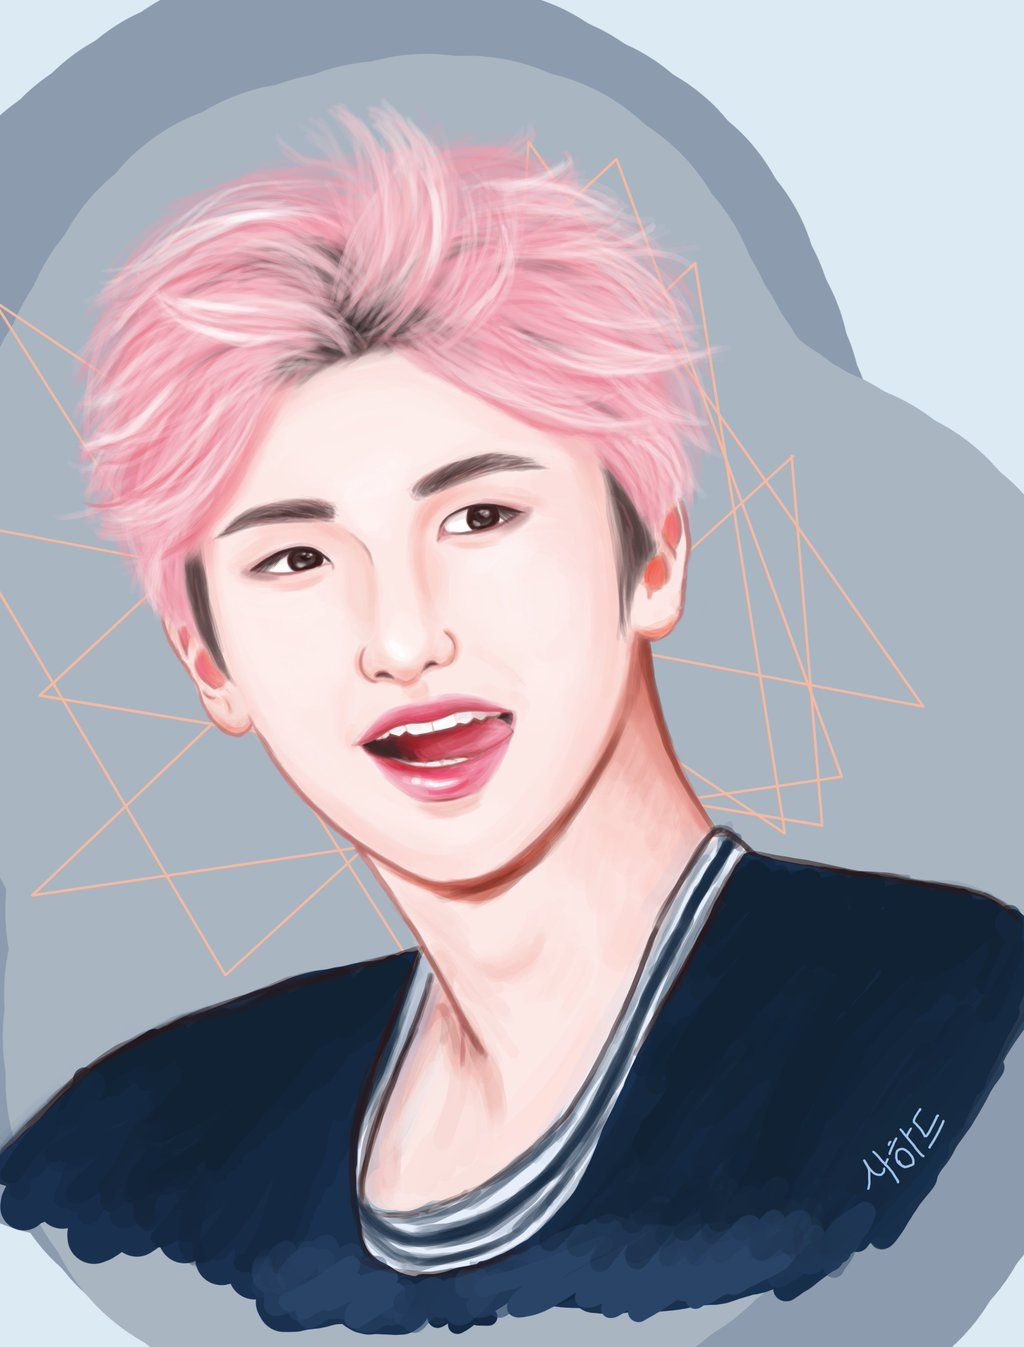 [FA] UP10TION Xiao - cr:@bbiiggyyuu   #업텐션 #UP10TION #샤오 #XIAO